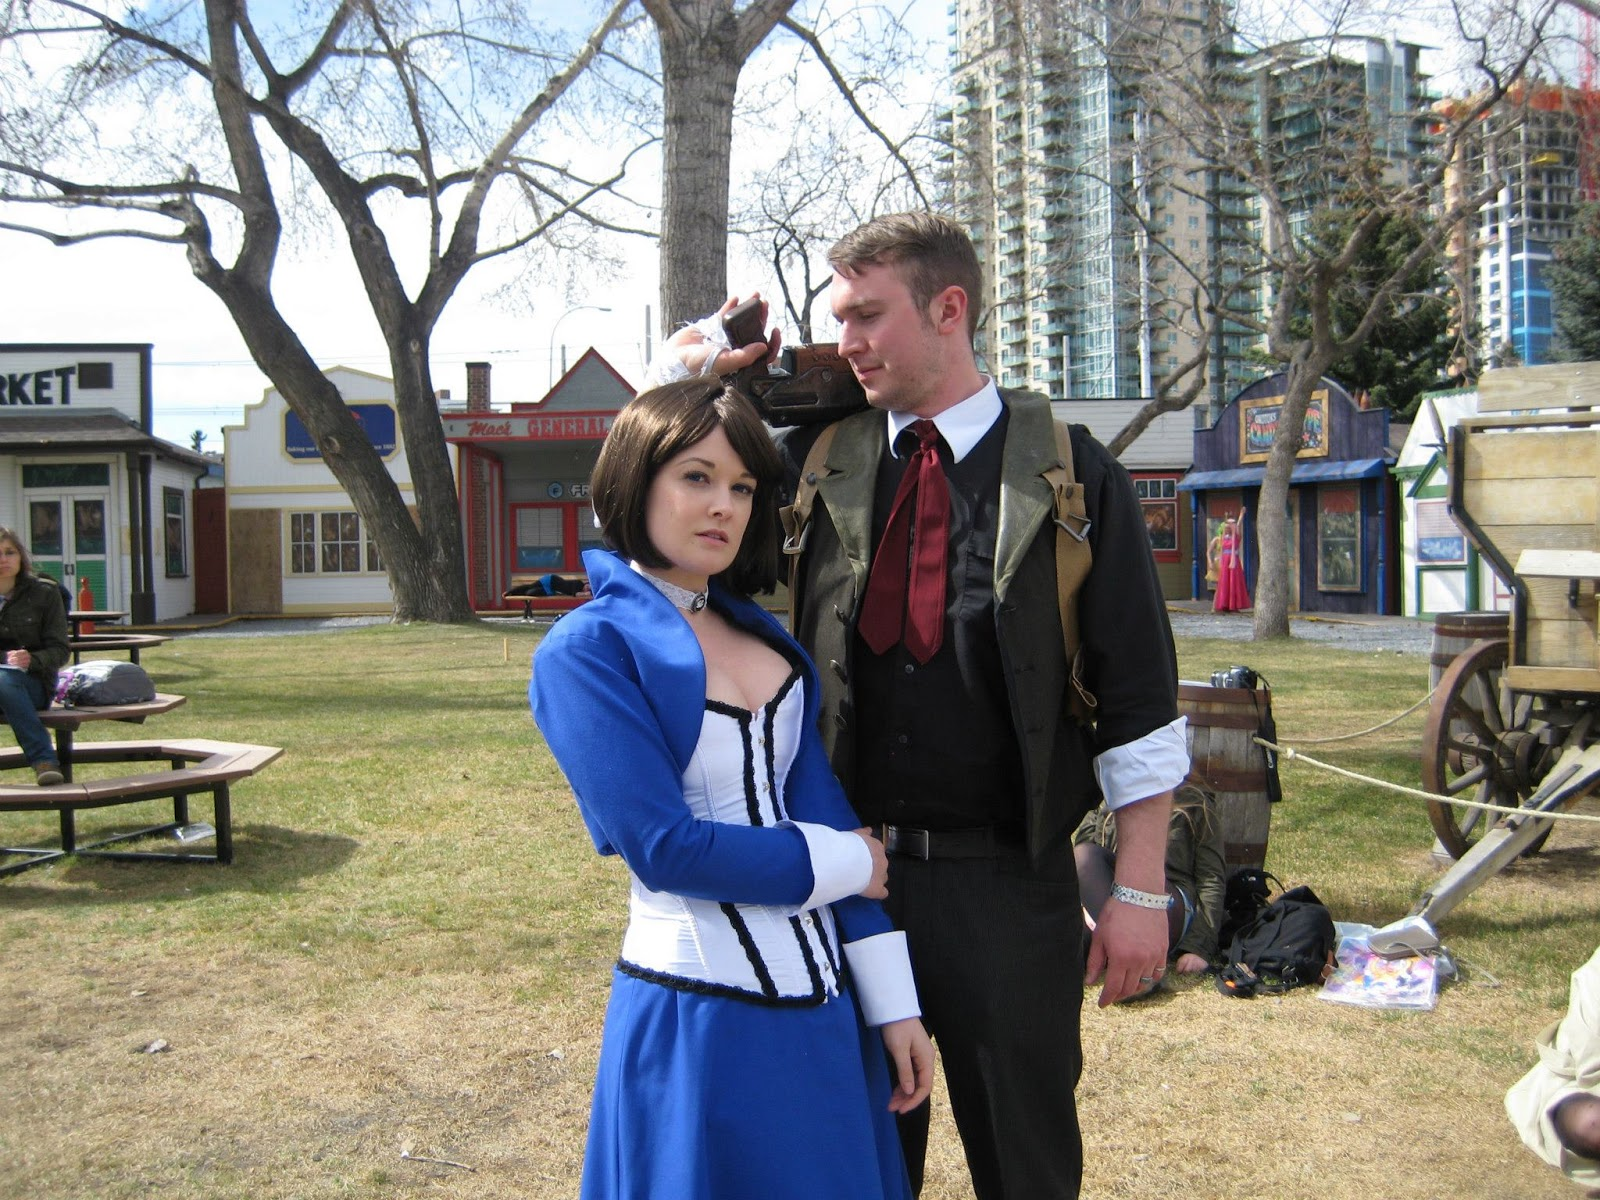 Blogs On The Life And Thoughts Of Alex: Calgary Expo